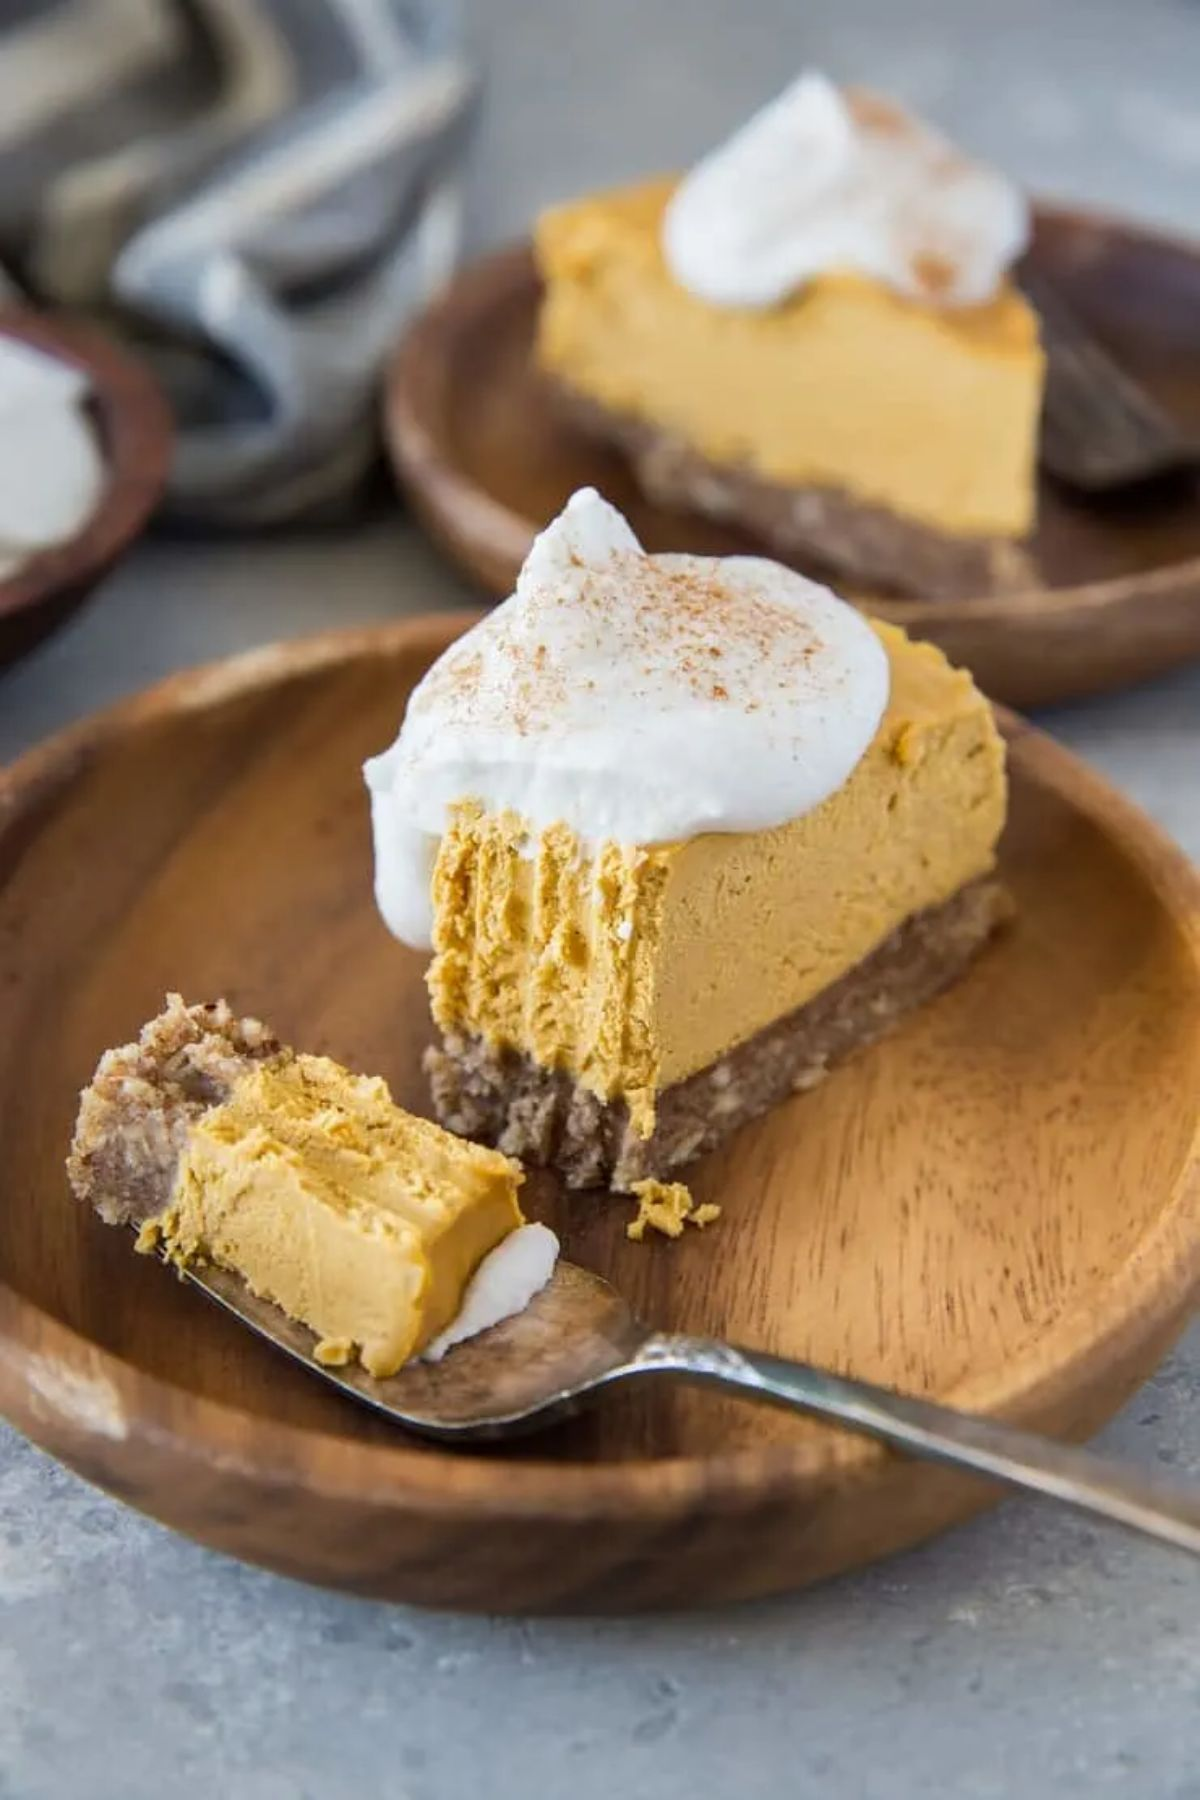 A wooden plate with a pumpkin cheesecake on it, topped with cream